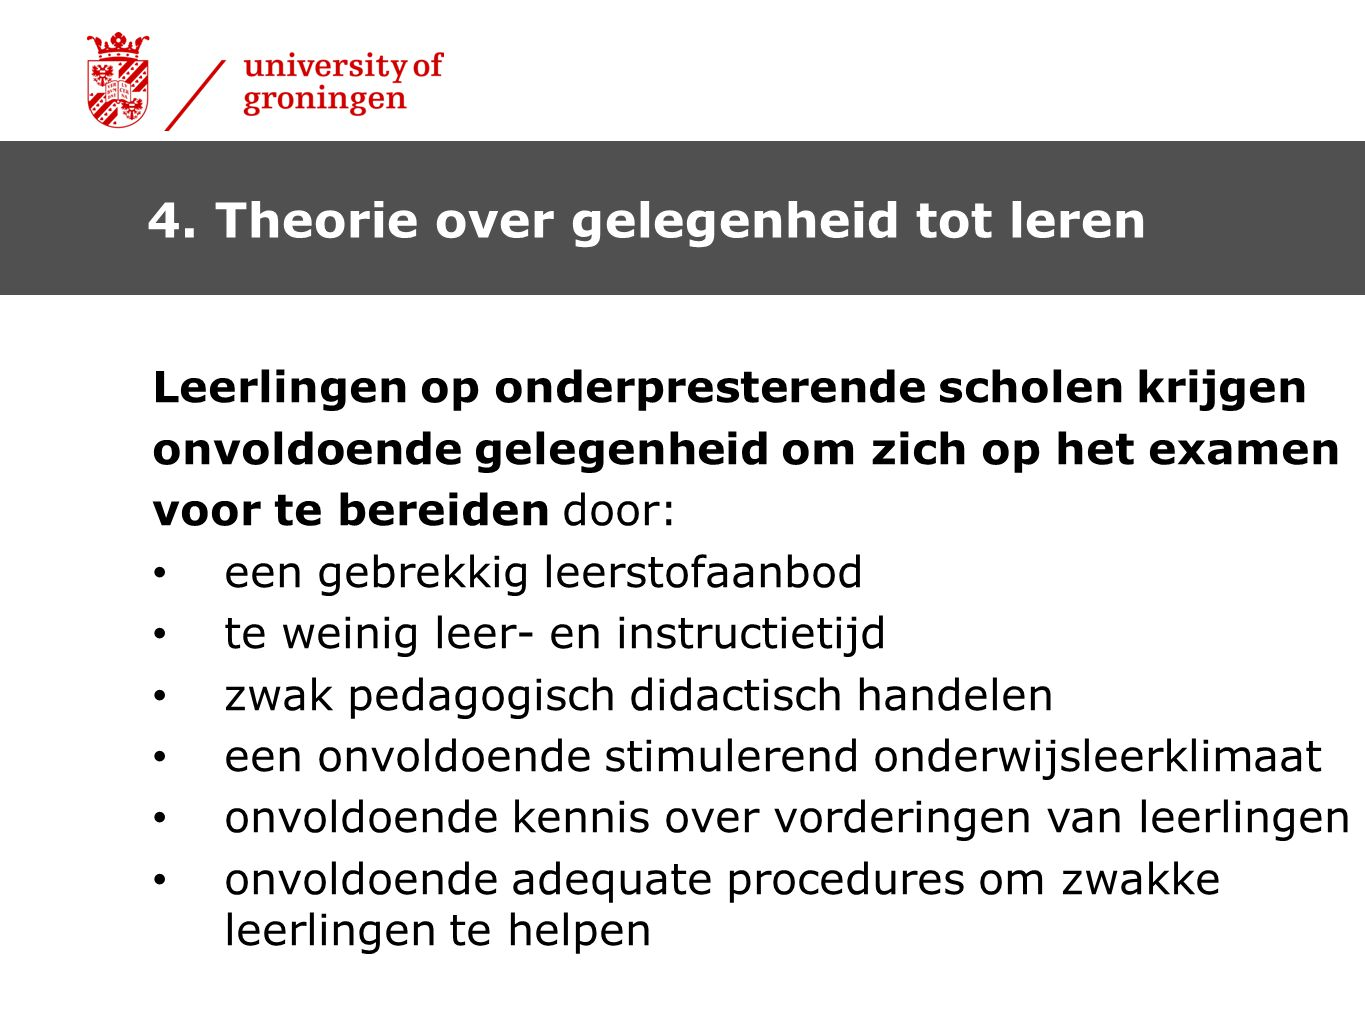 4. Theorie over gelegenheid tot leren